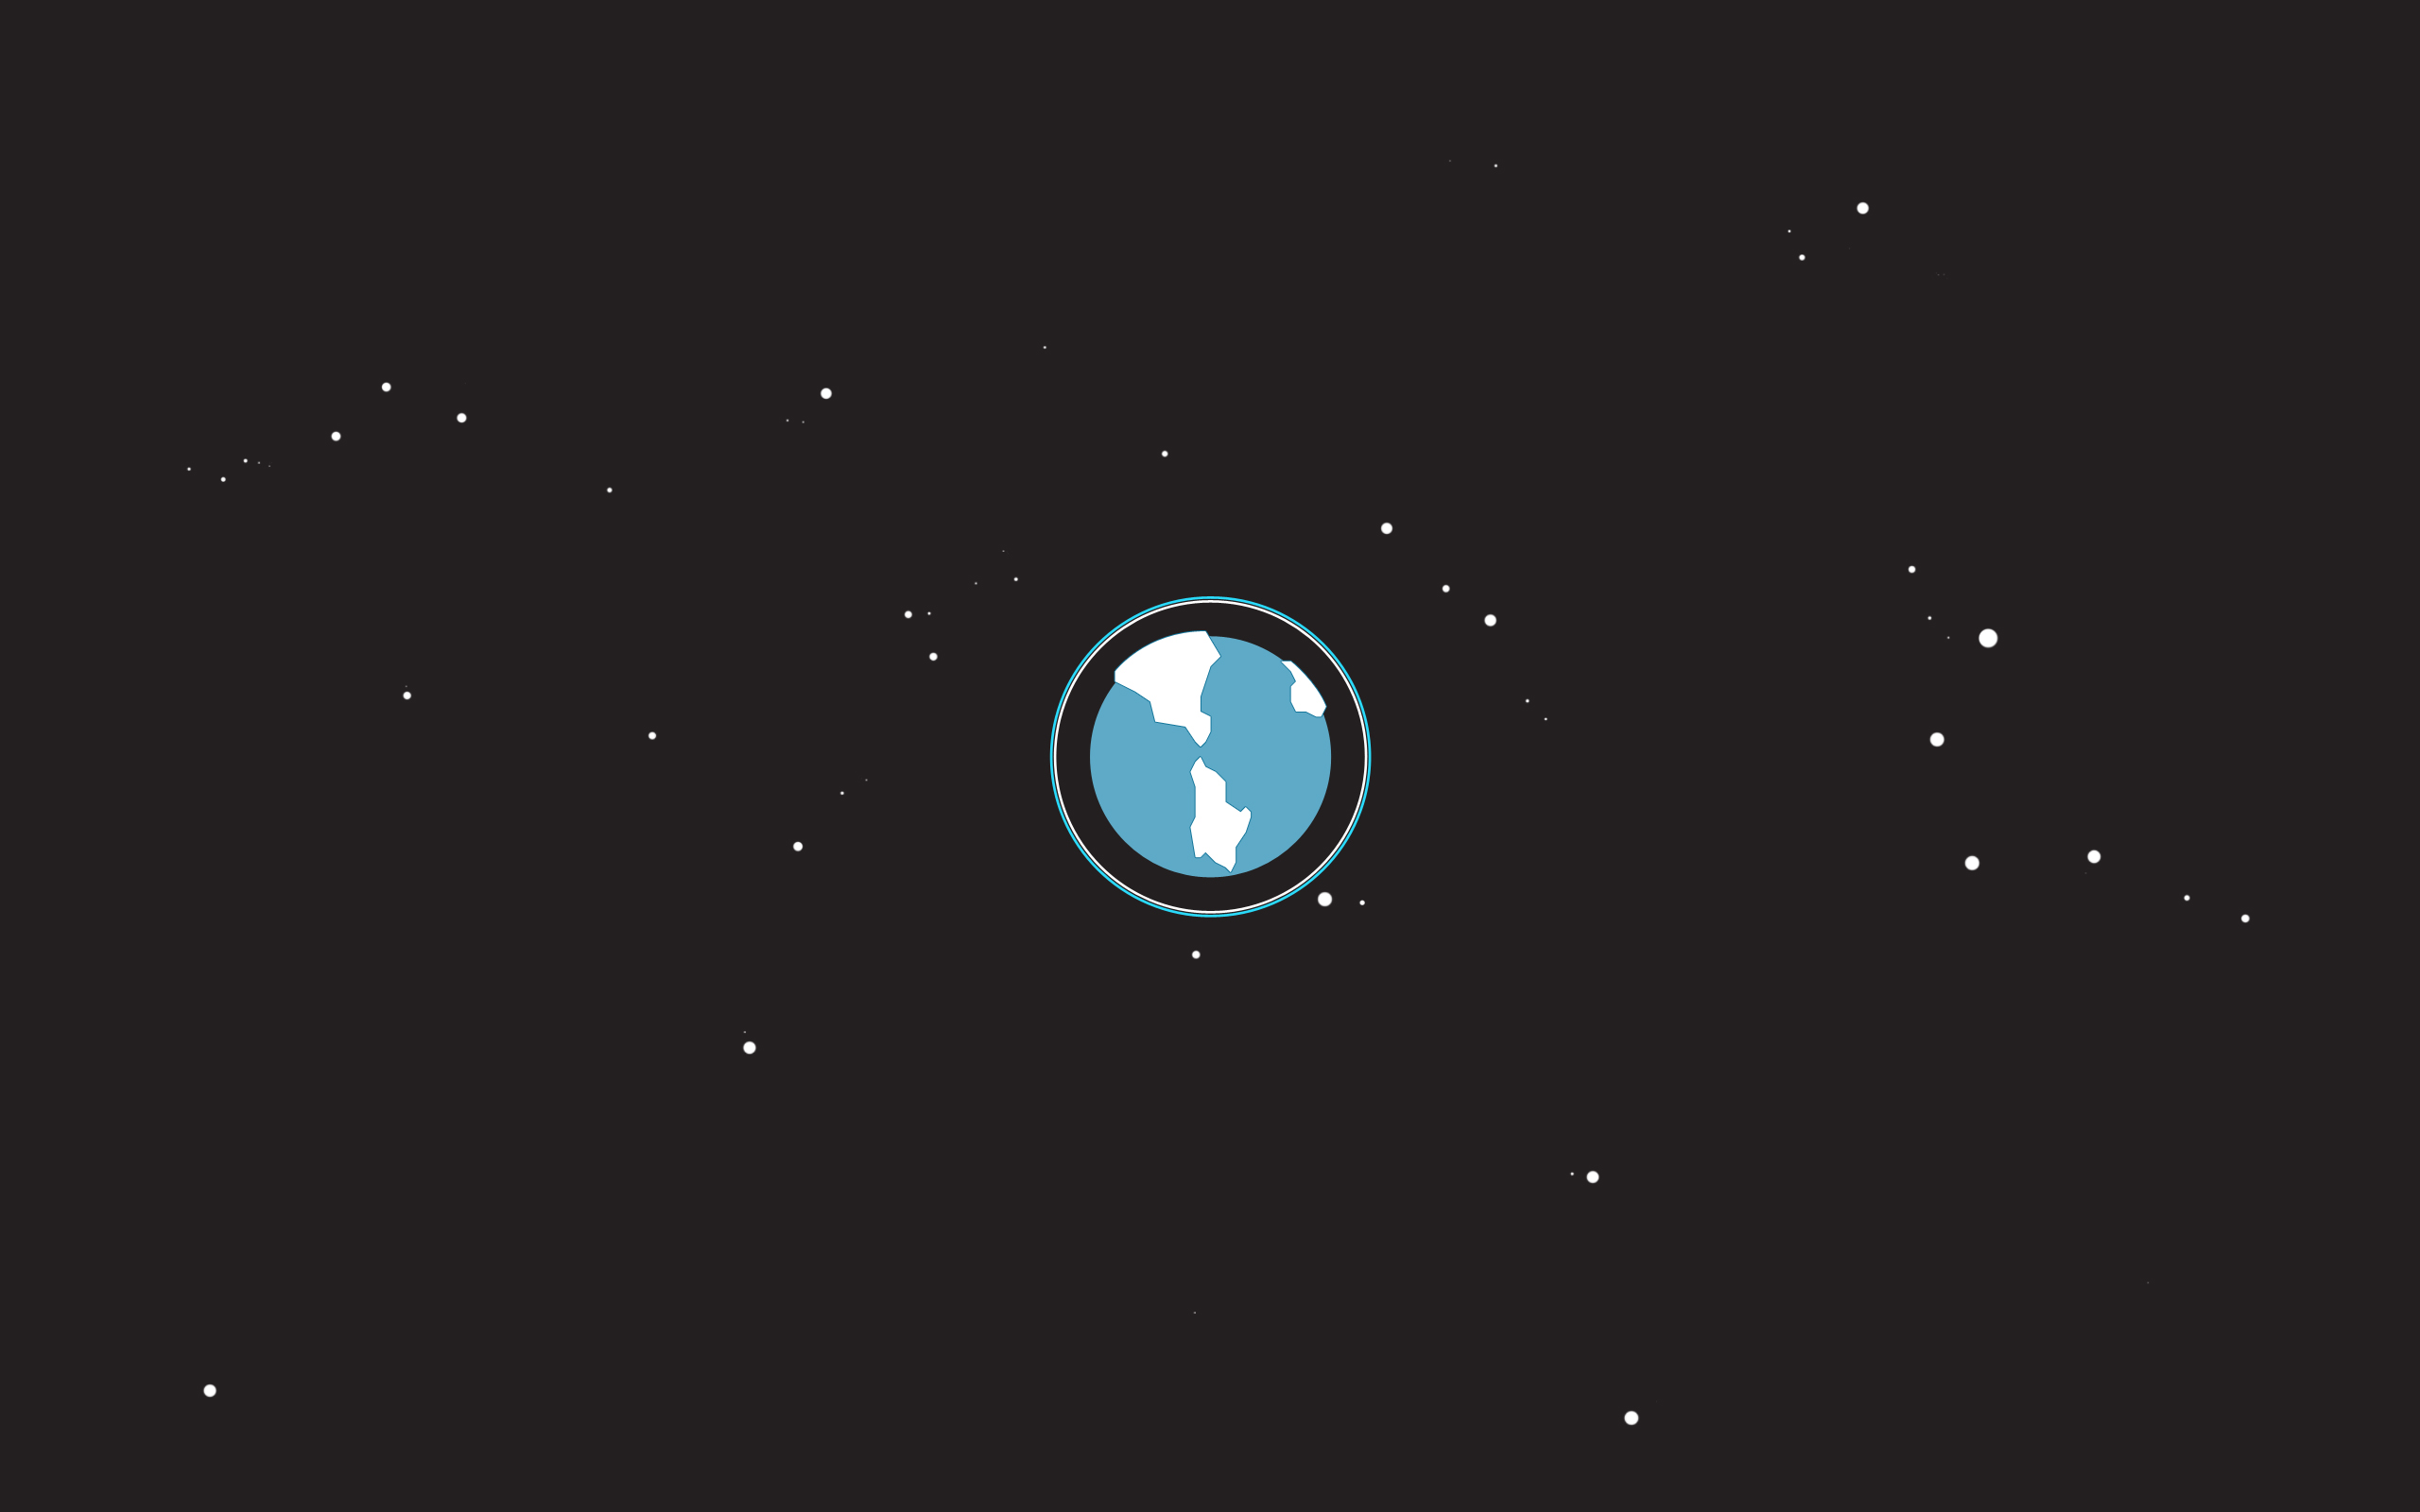 150 Simple Desktop Wallpapers for Minimalist Lovers - icanbecreative